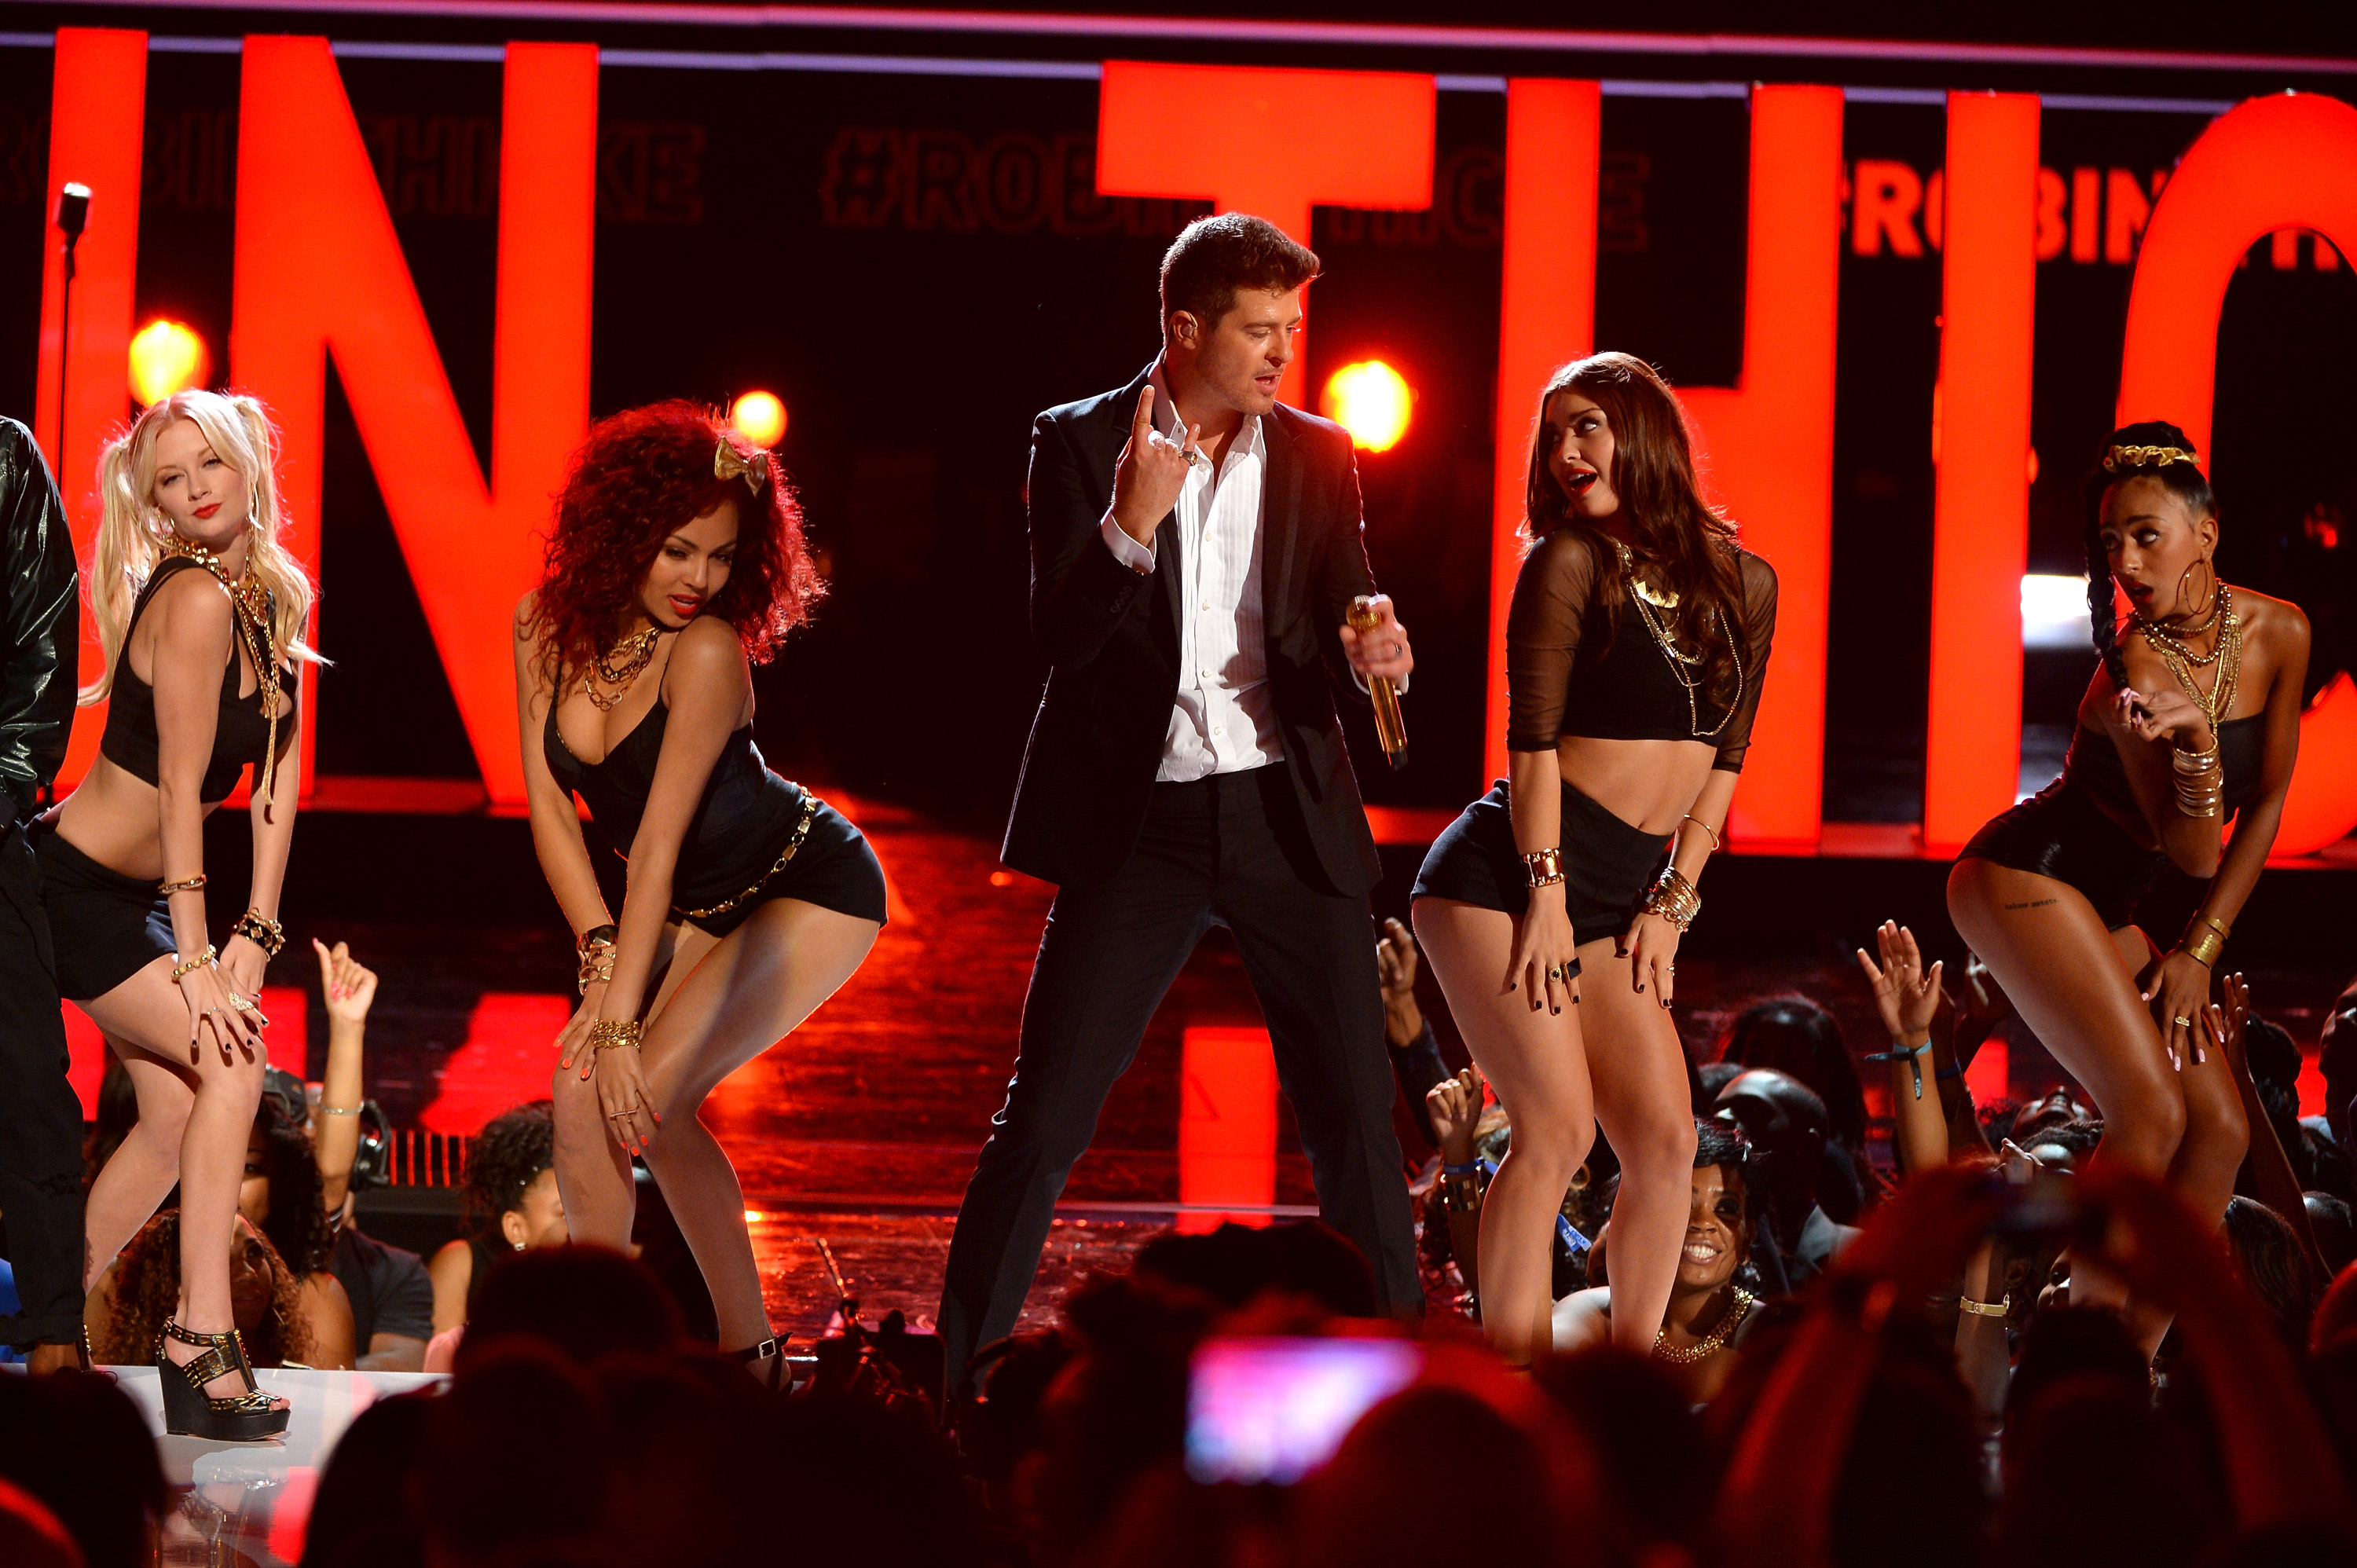 LOS ANGELES, CA - JUNE 30: Recording artist Robin Thicke performs onstage during the 2013 BET Awards at Nokia Theatre L.A. Li